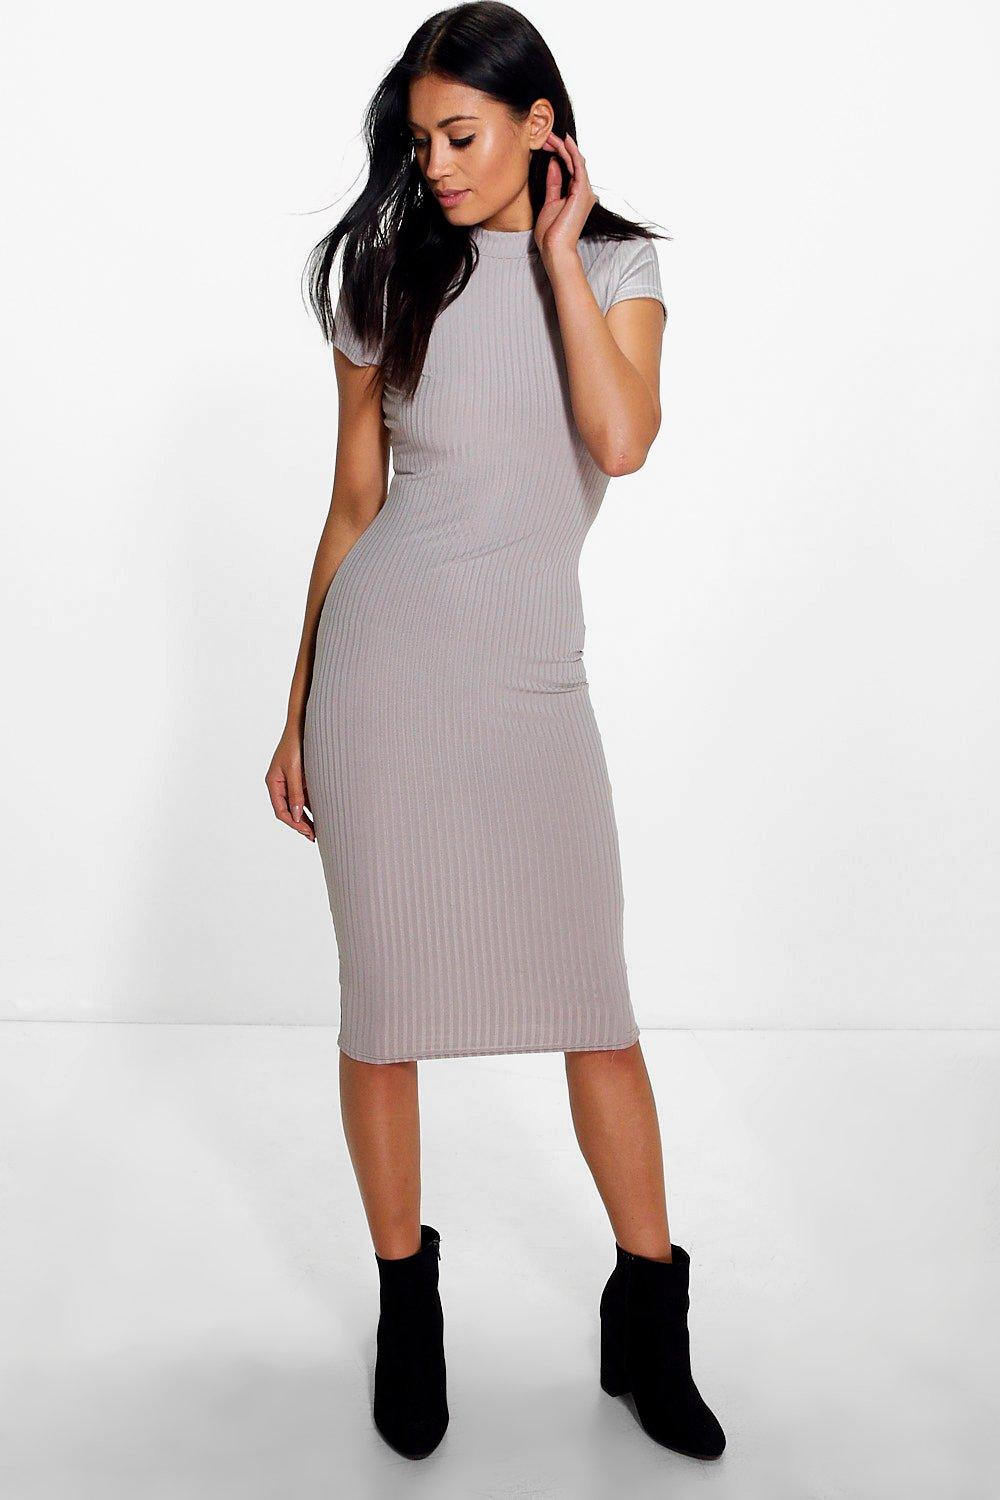 Lo High Neck Cap Sleeved Bodycon Midi Dress